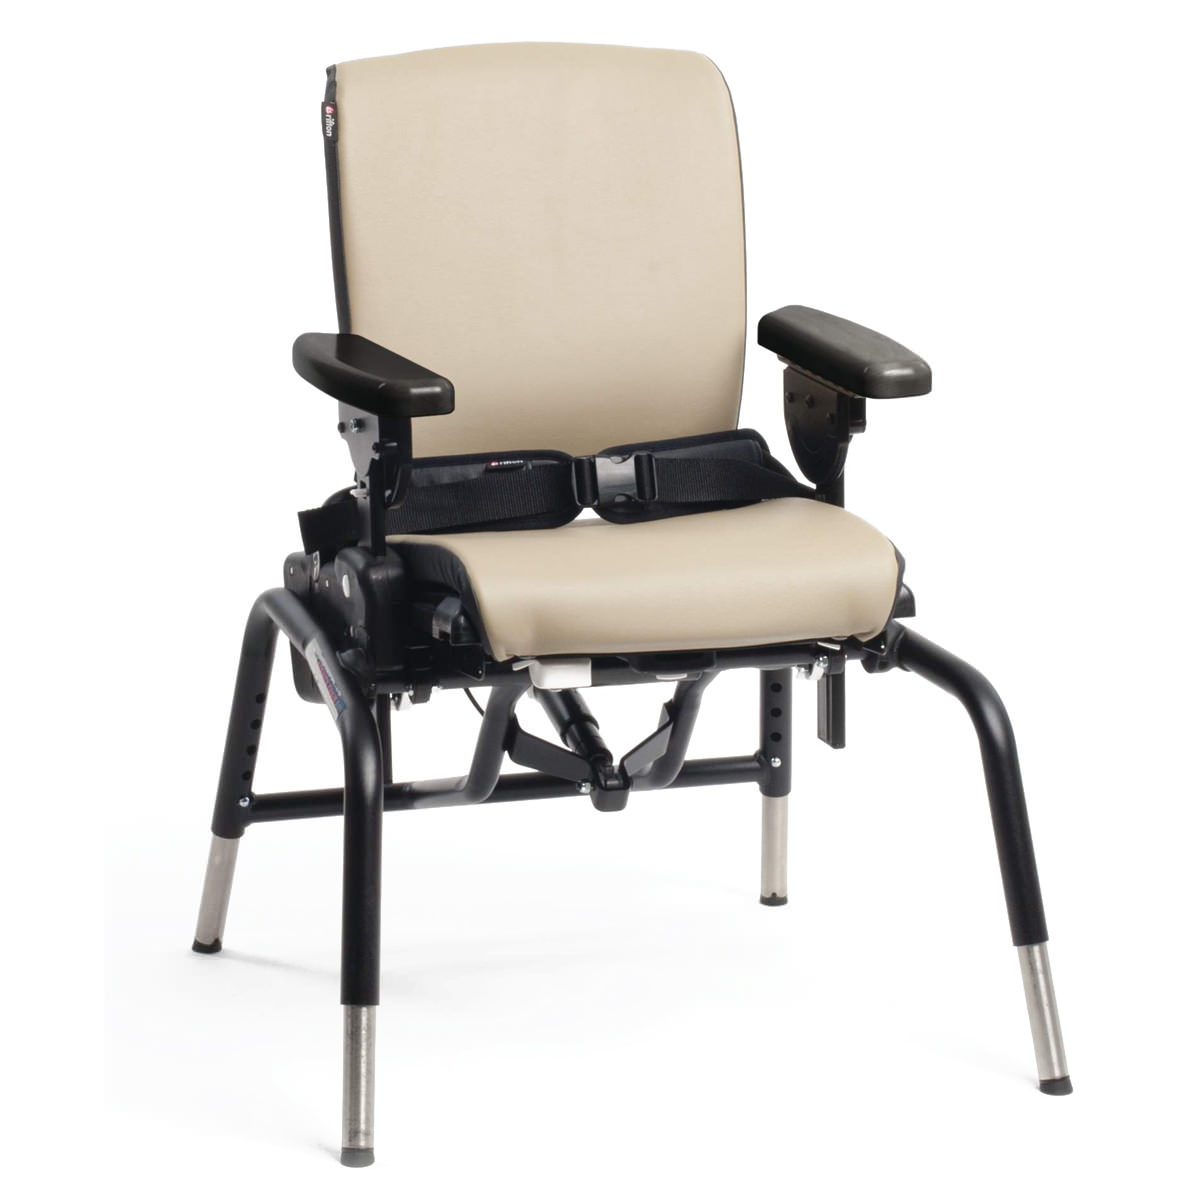 Rifton activity chair with standard base